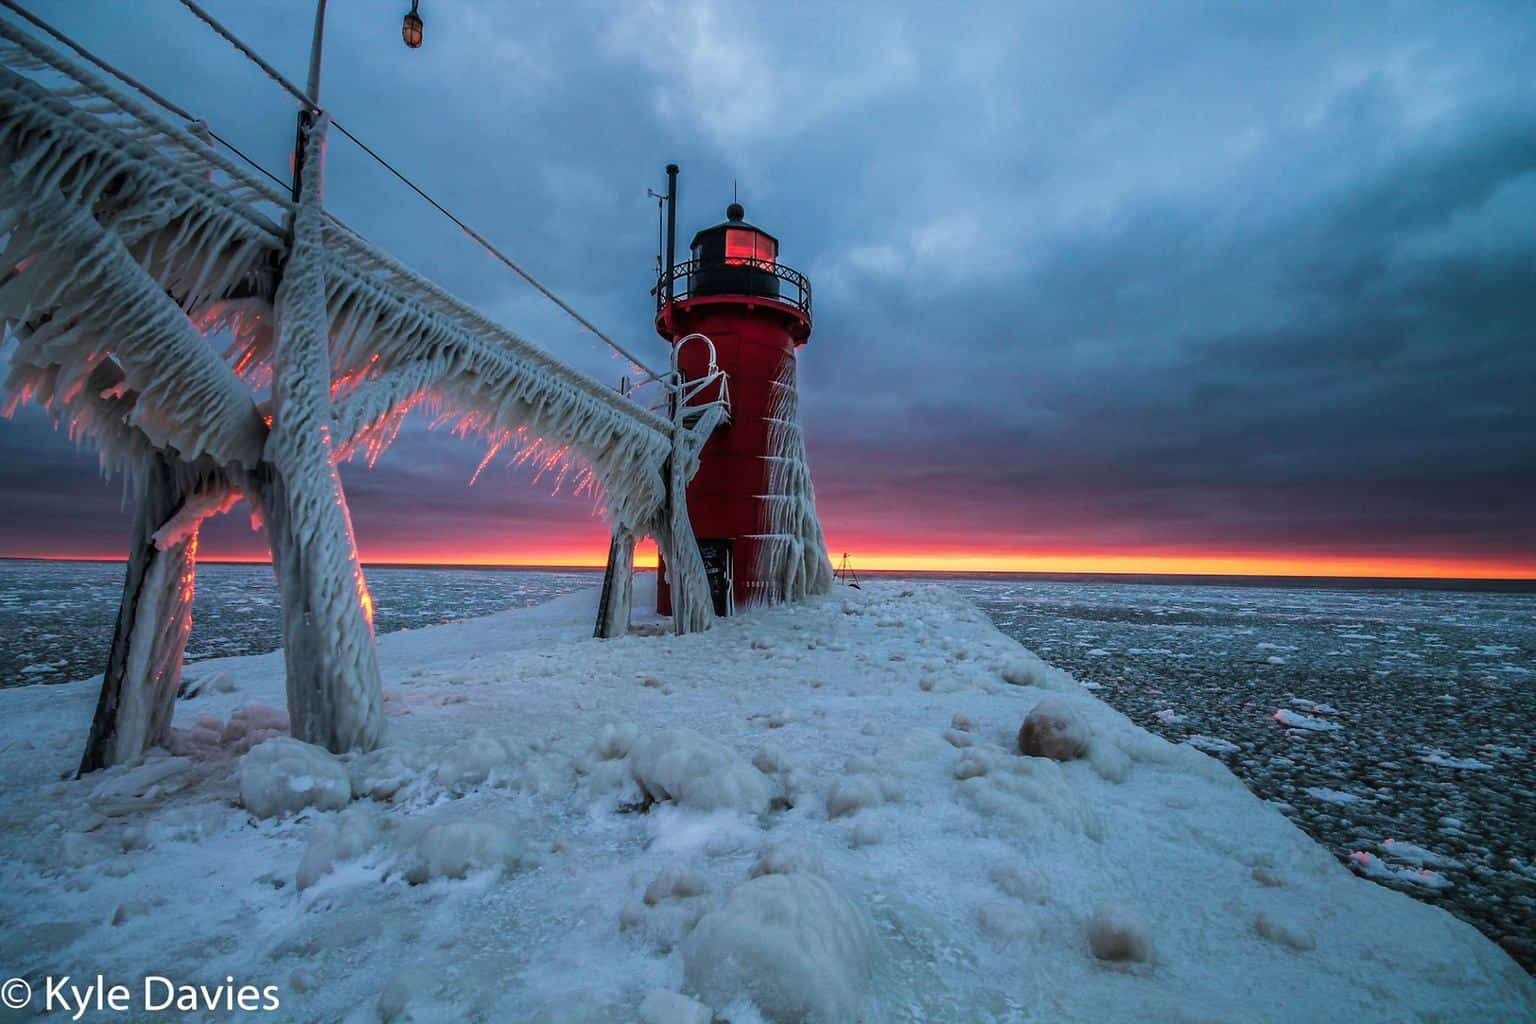 As we are getting closer and closer to old man winter, here is a shot of the South Haven, MI lighthouse encased in ice after a windy winter storm came through.